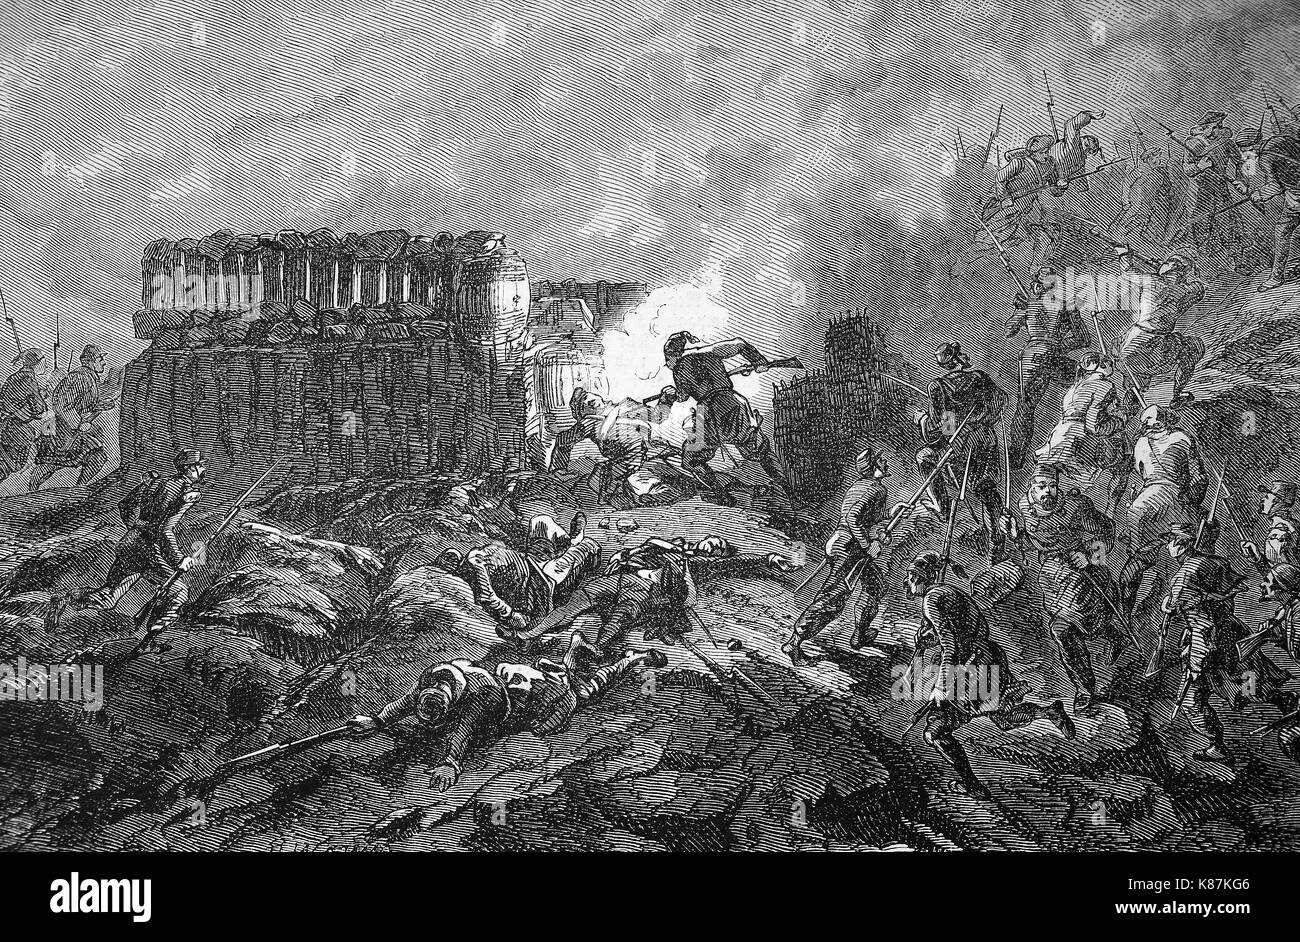 Crimean War 1855, Conquest of a Russian ambush at the Bastion, Digital improved reproduction of an original woodprint from the 19th century - Stock Image